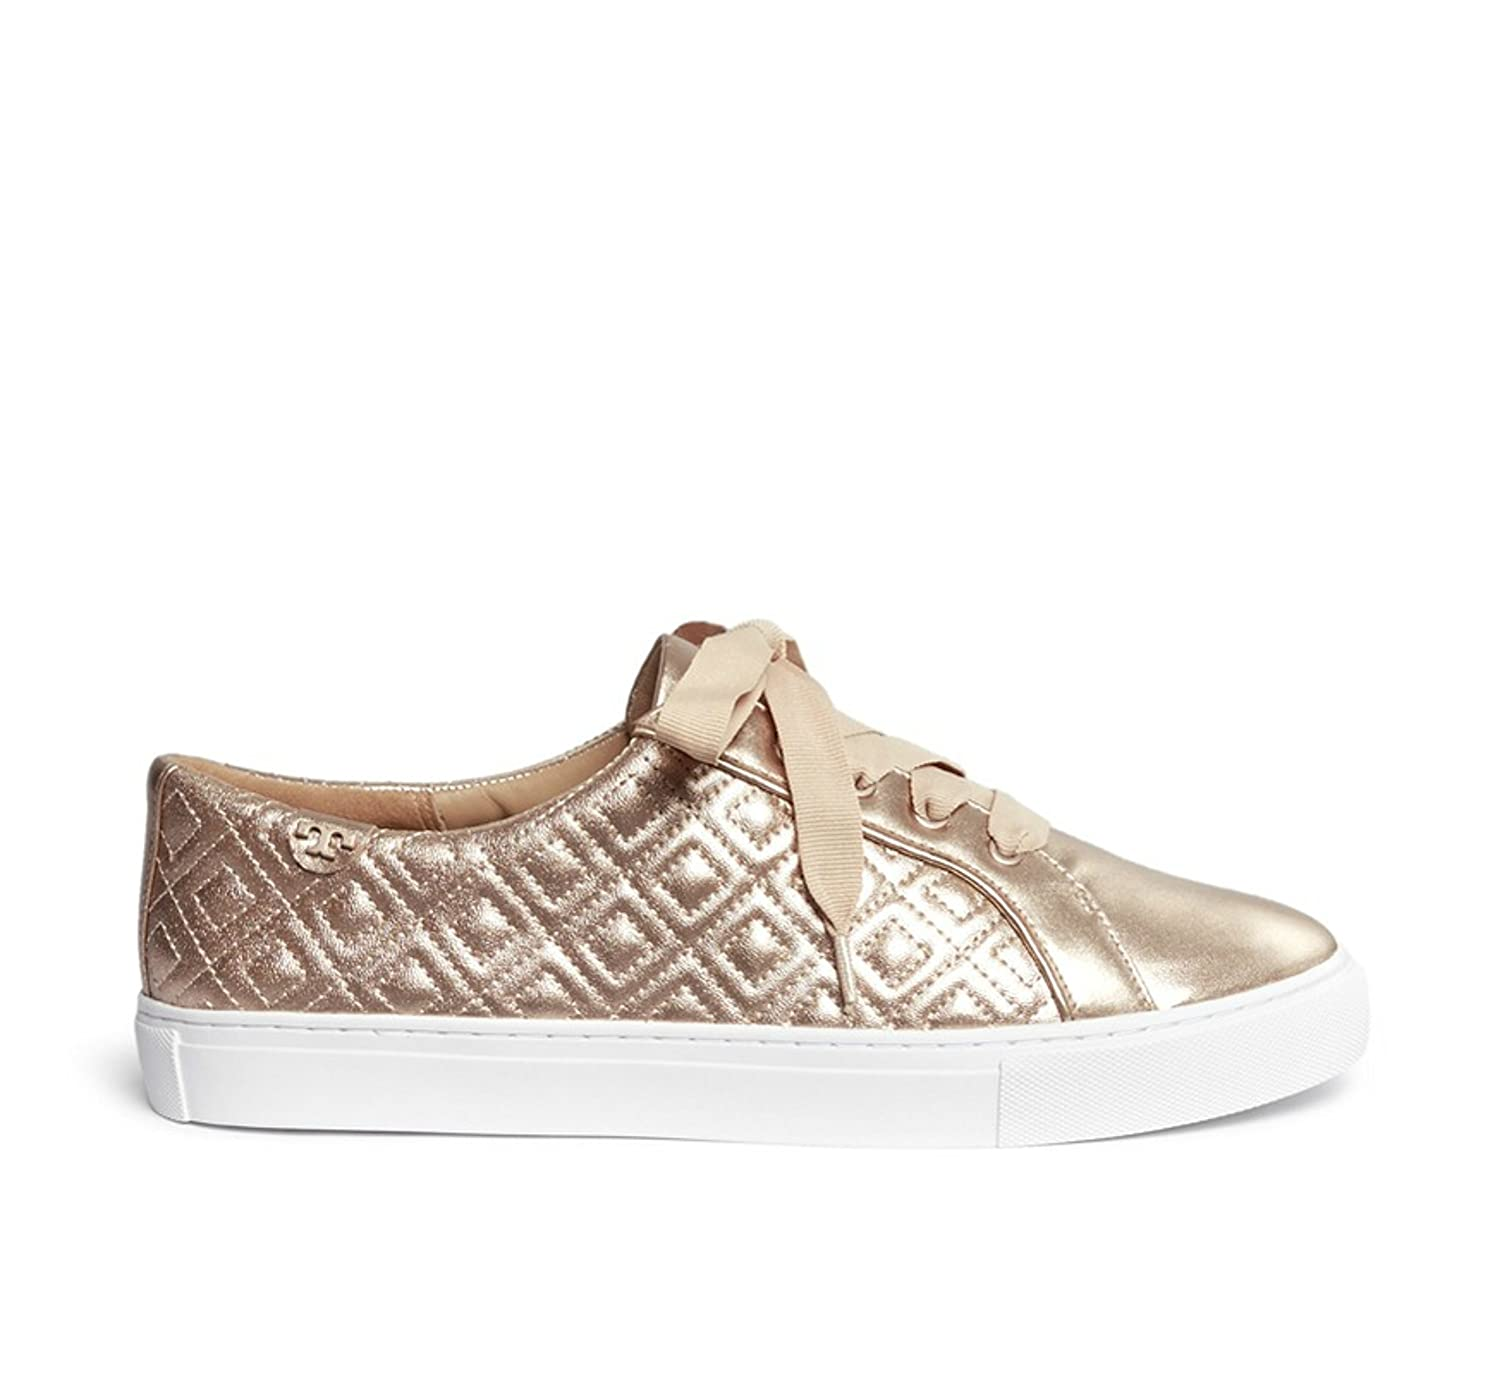 Tory Burch Women's Metallic Marion Quilted Leather Fashion Sneakers B07F17HP61 9.5 B(M) US